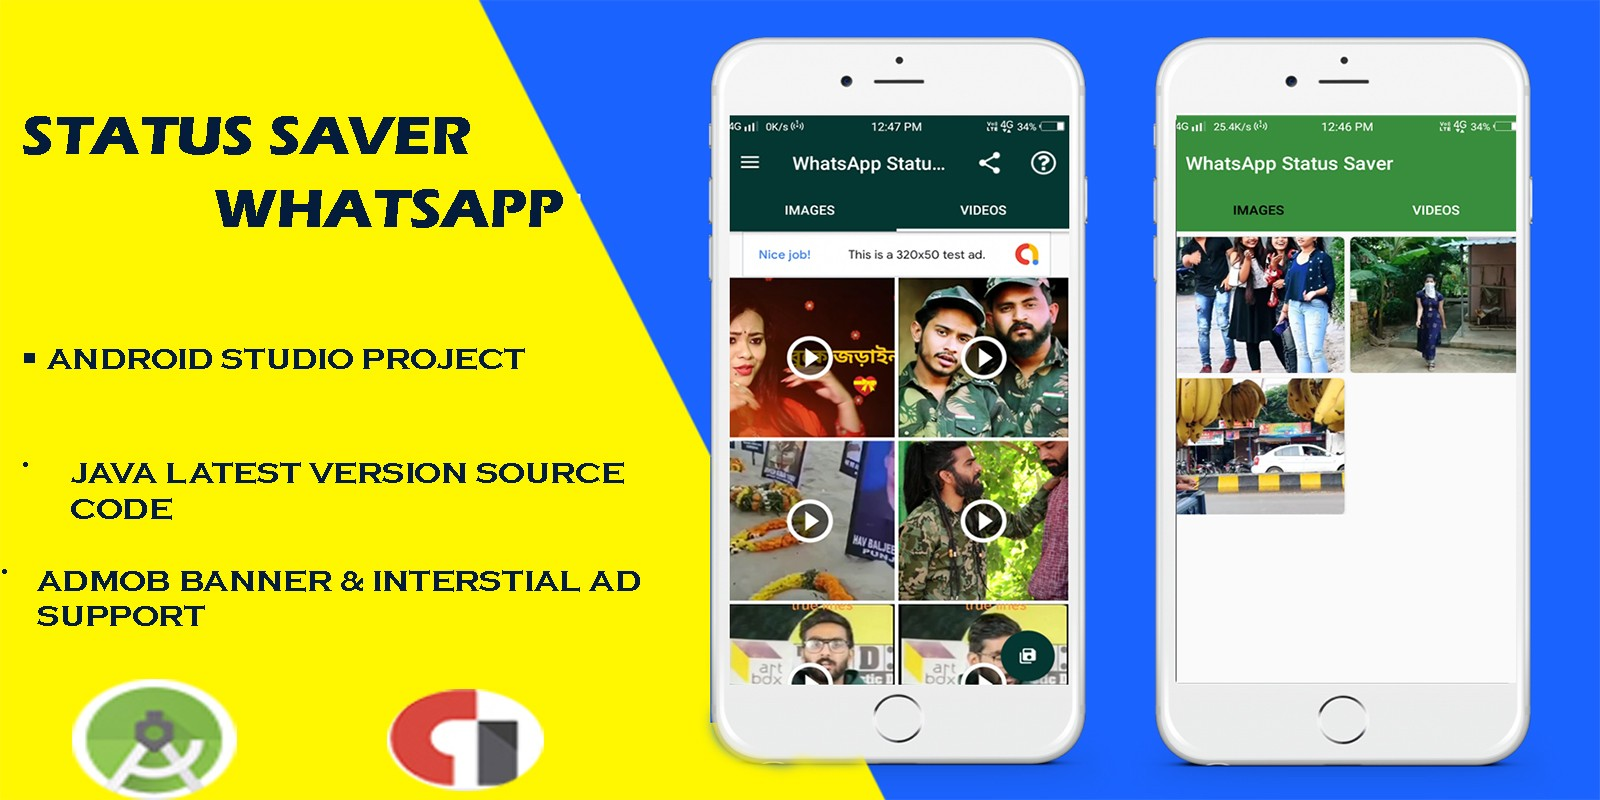 Status Saver Whatsapp Android App Template